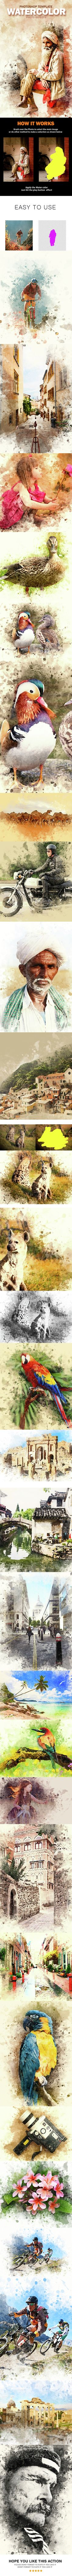 Watercolor Photoshop Action - Photoshop Add-ons